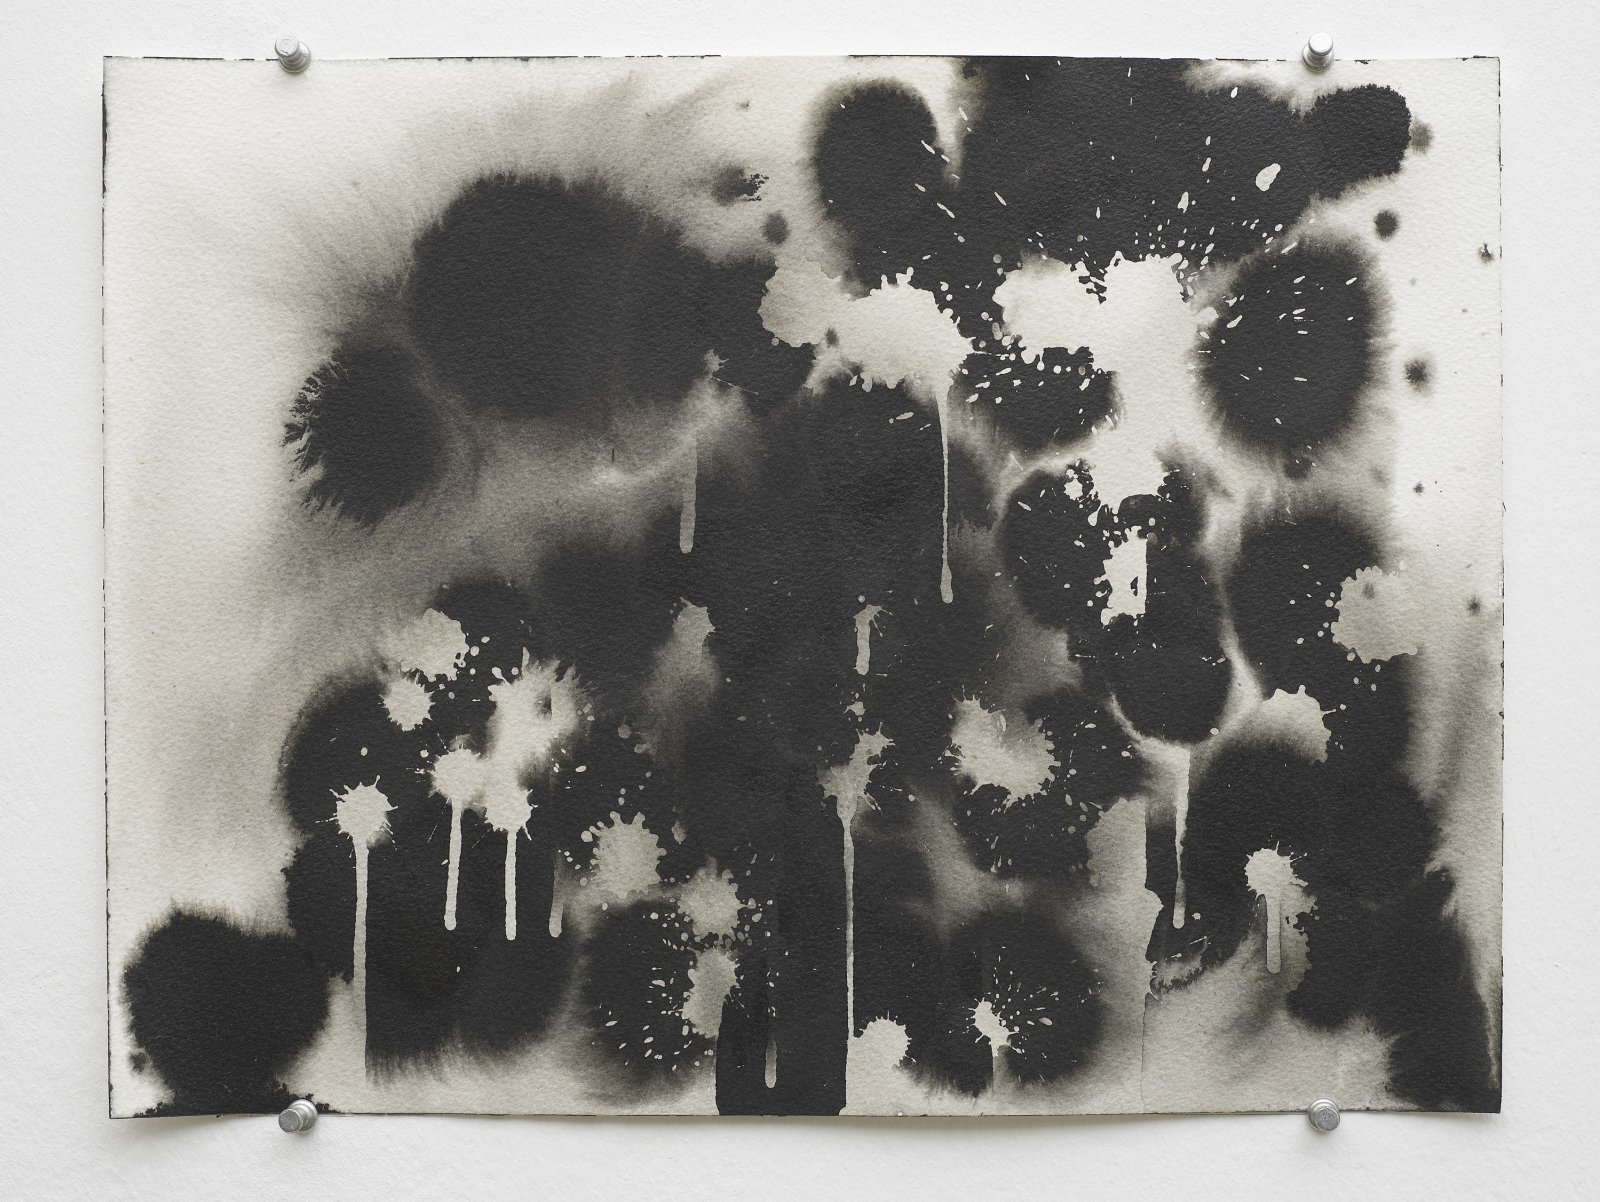 Christina Mackie, Studies for Explosions, 2011, indian ink on paper, dimensions variable by Christina Mackie